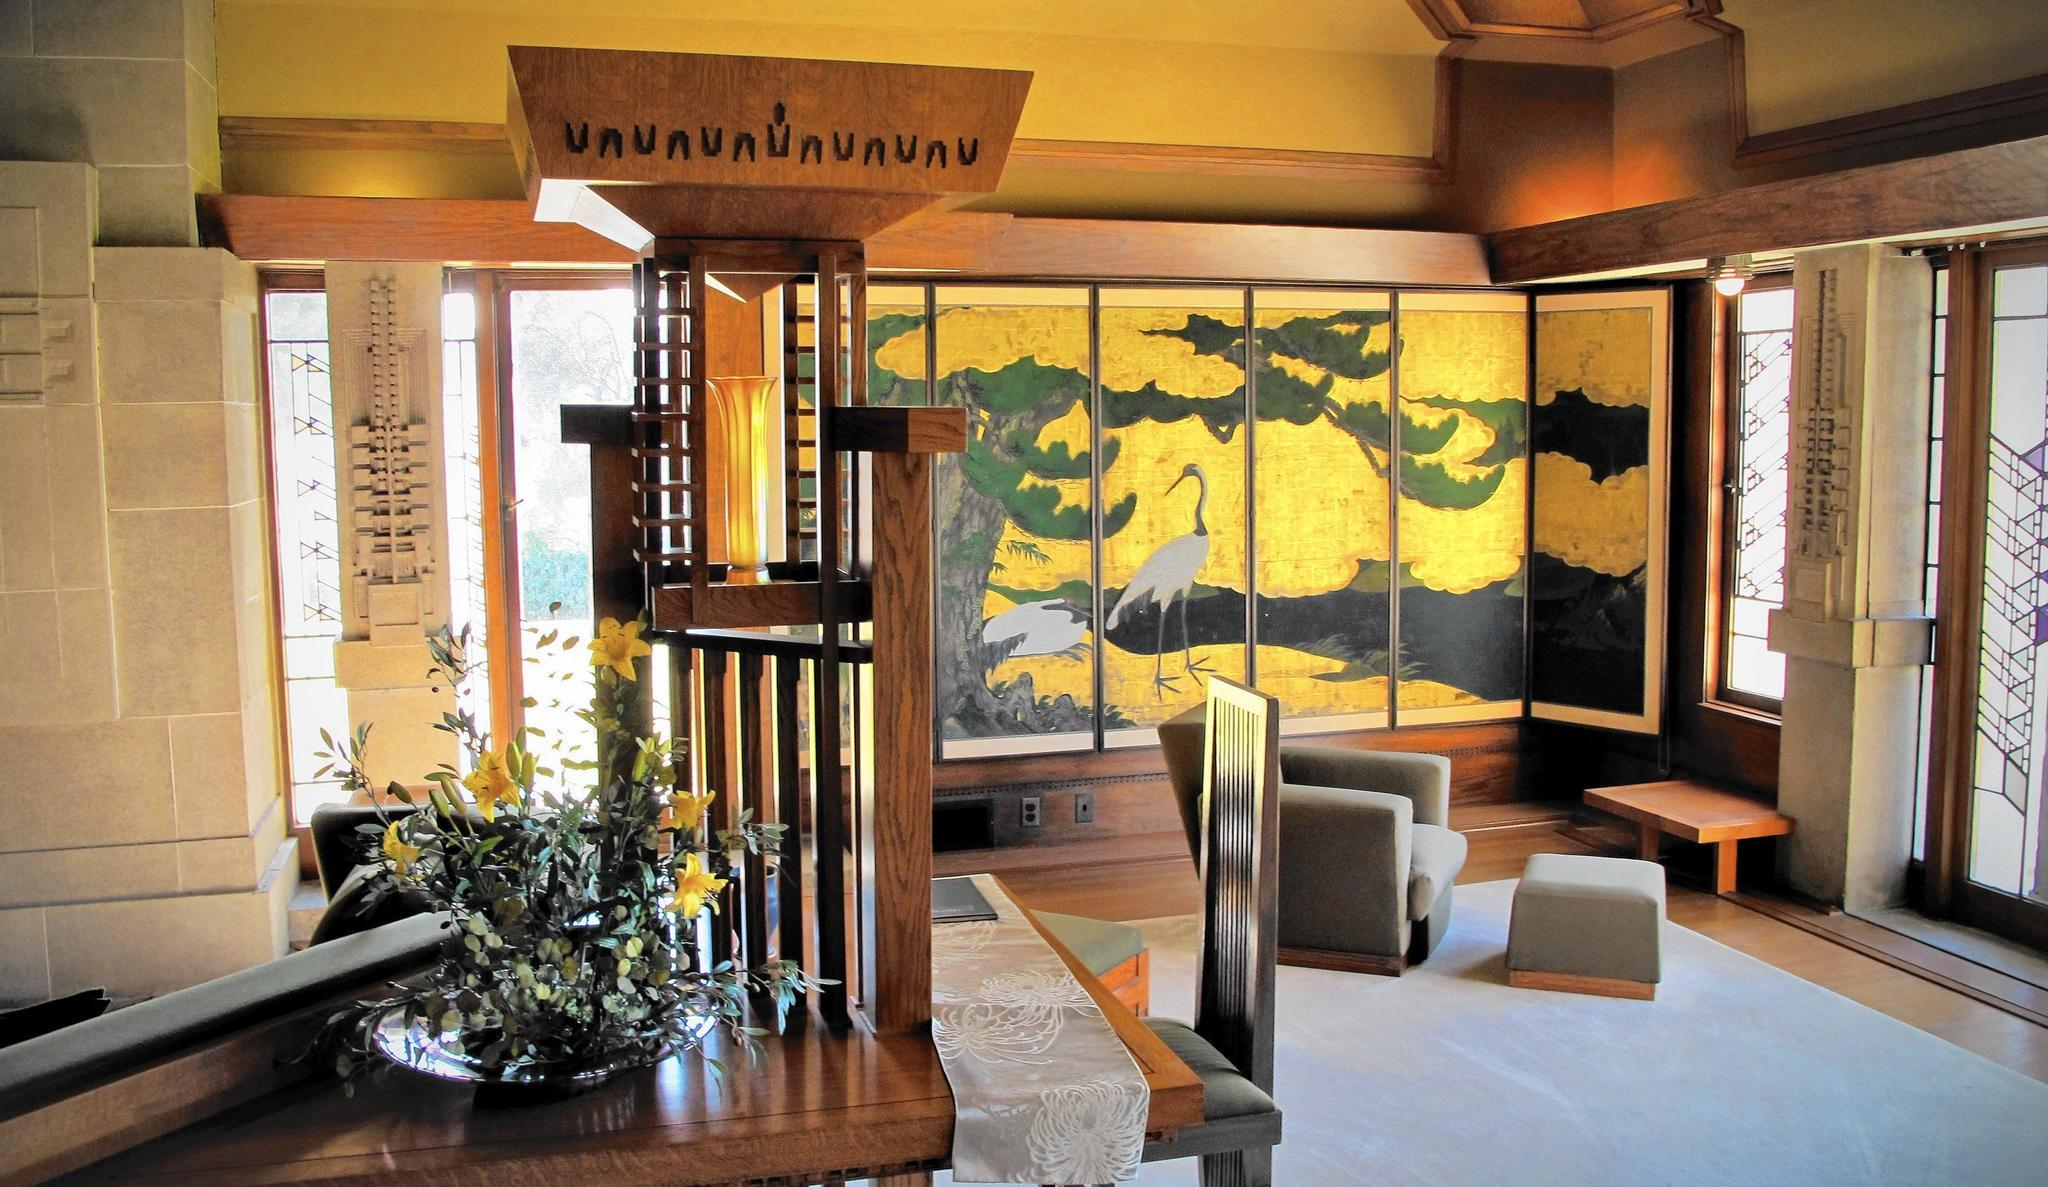 frank lloyd wright interiors. Black Bedroom Furniture Sets. Home Design Ideas